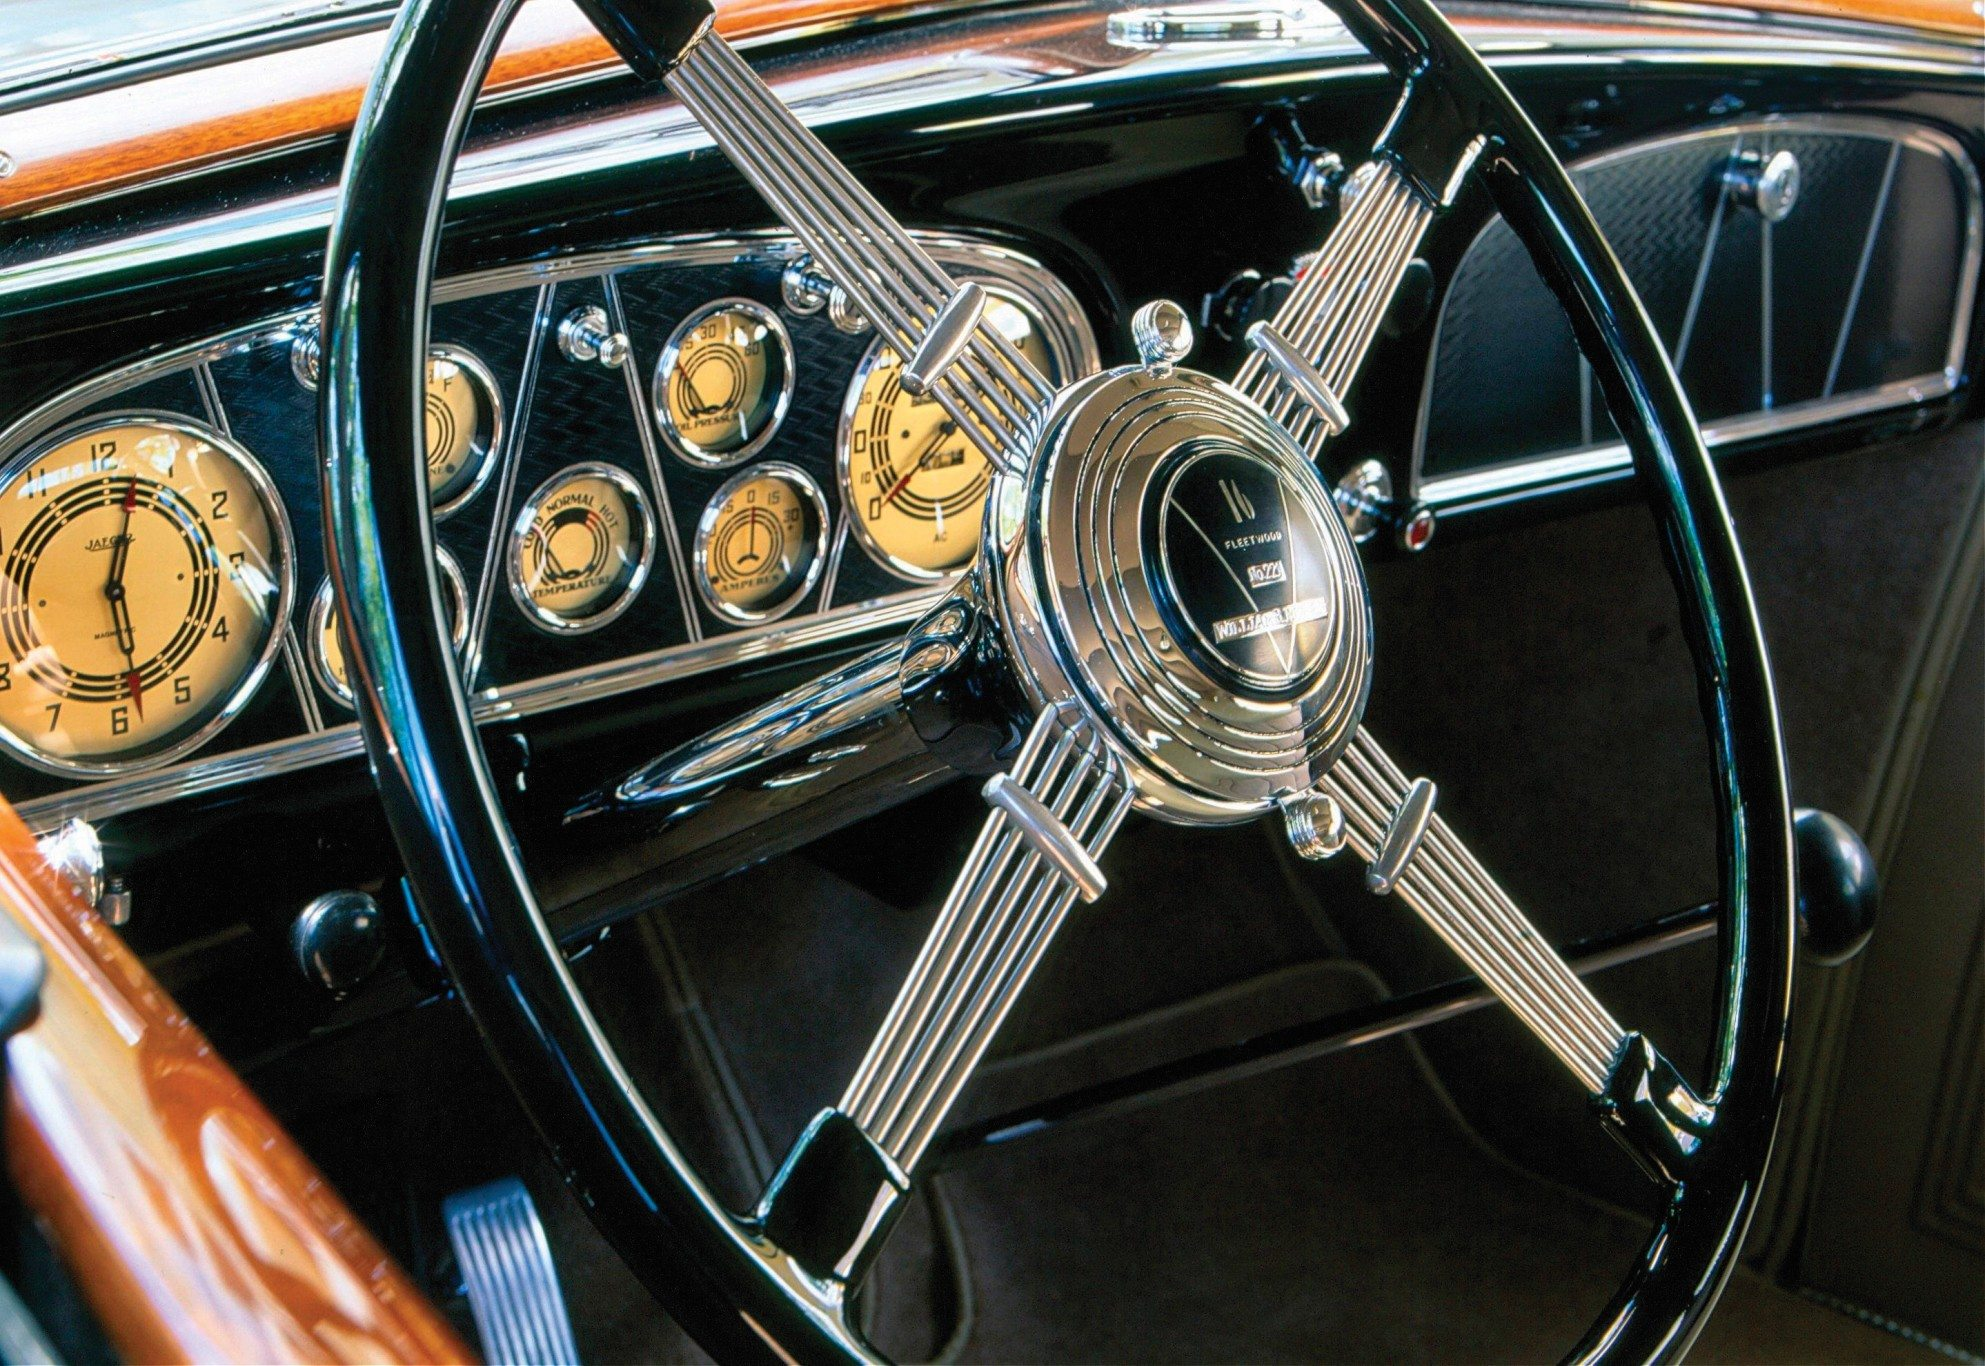 1933-Cadillac-V16-Dashboards-and-Instruments